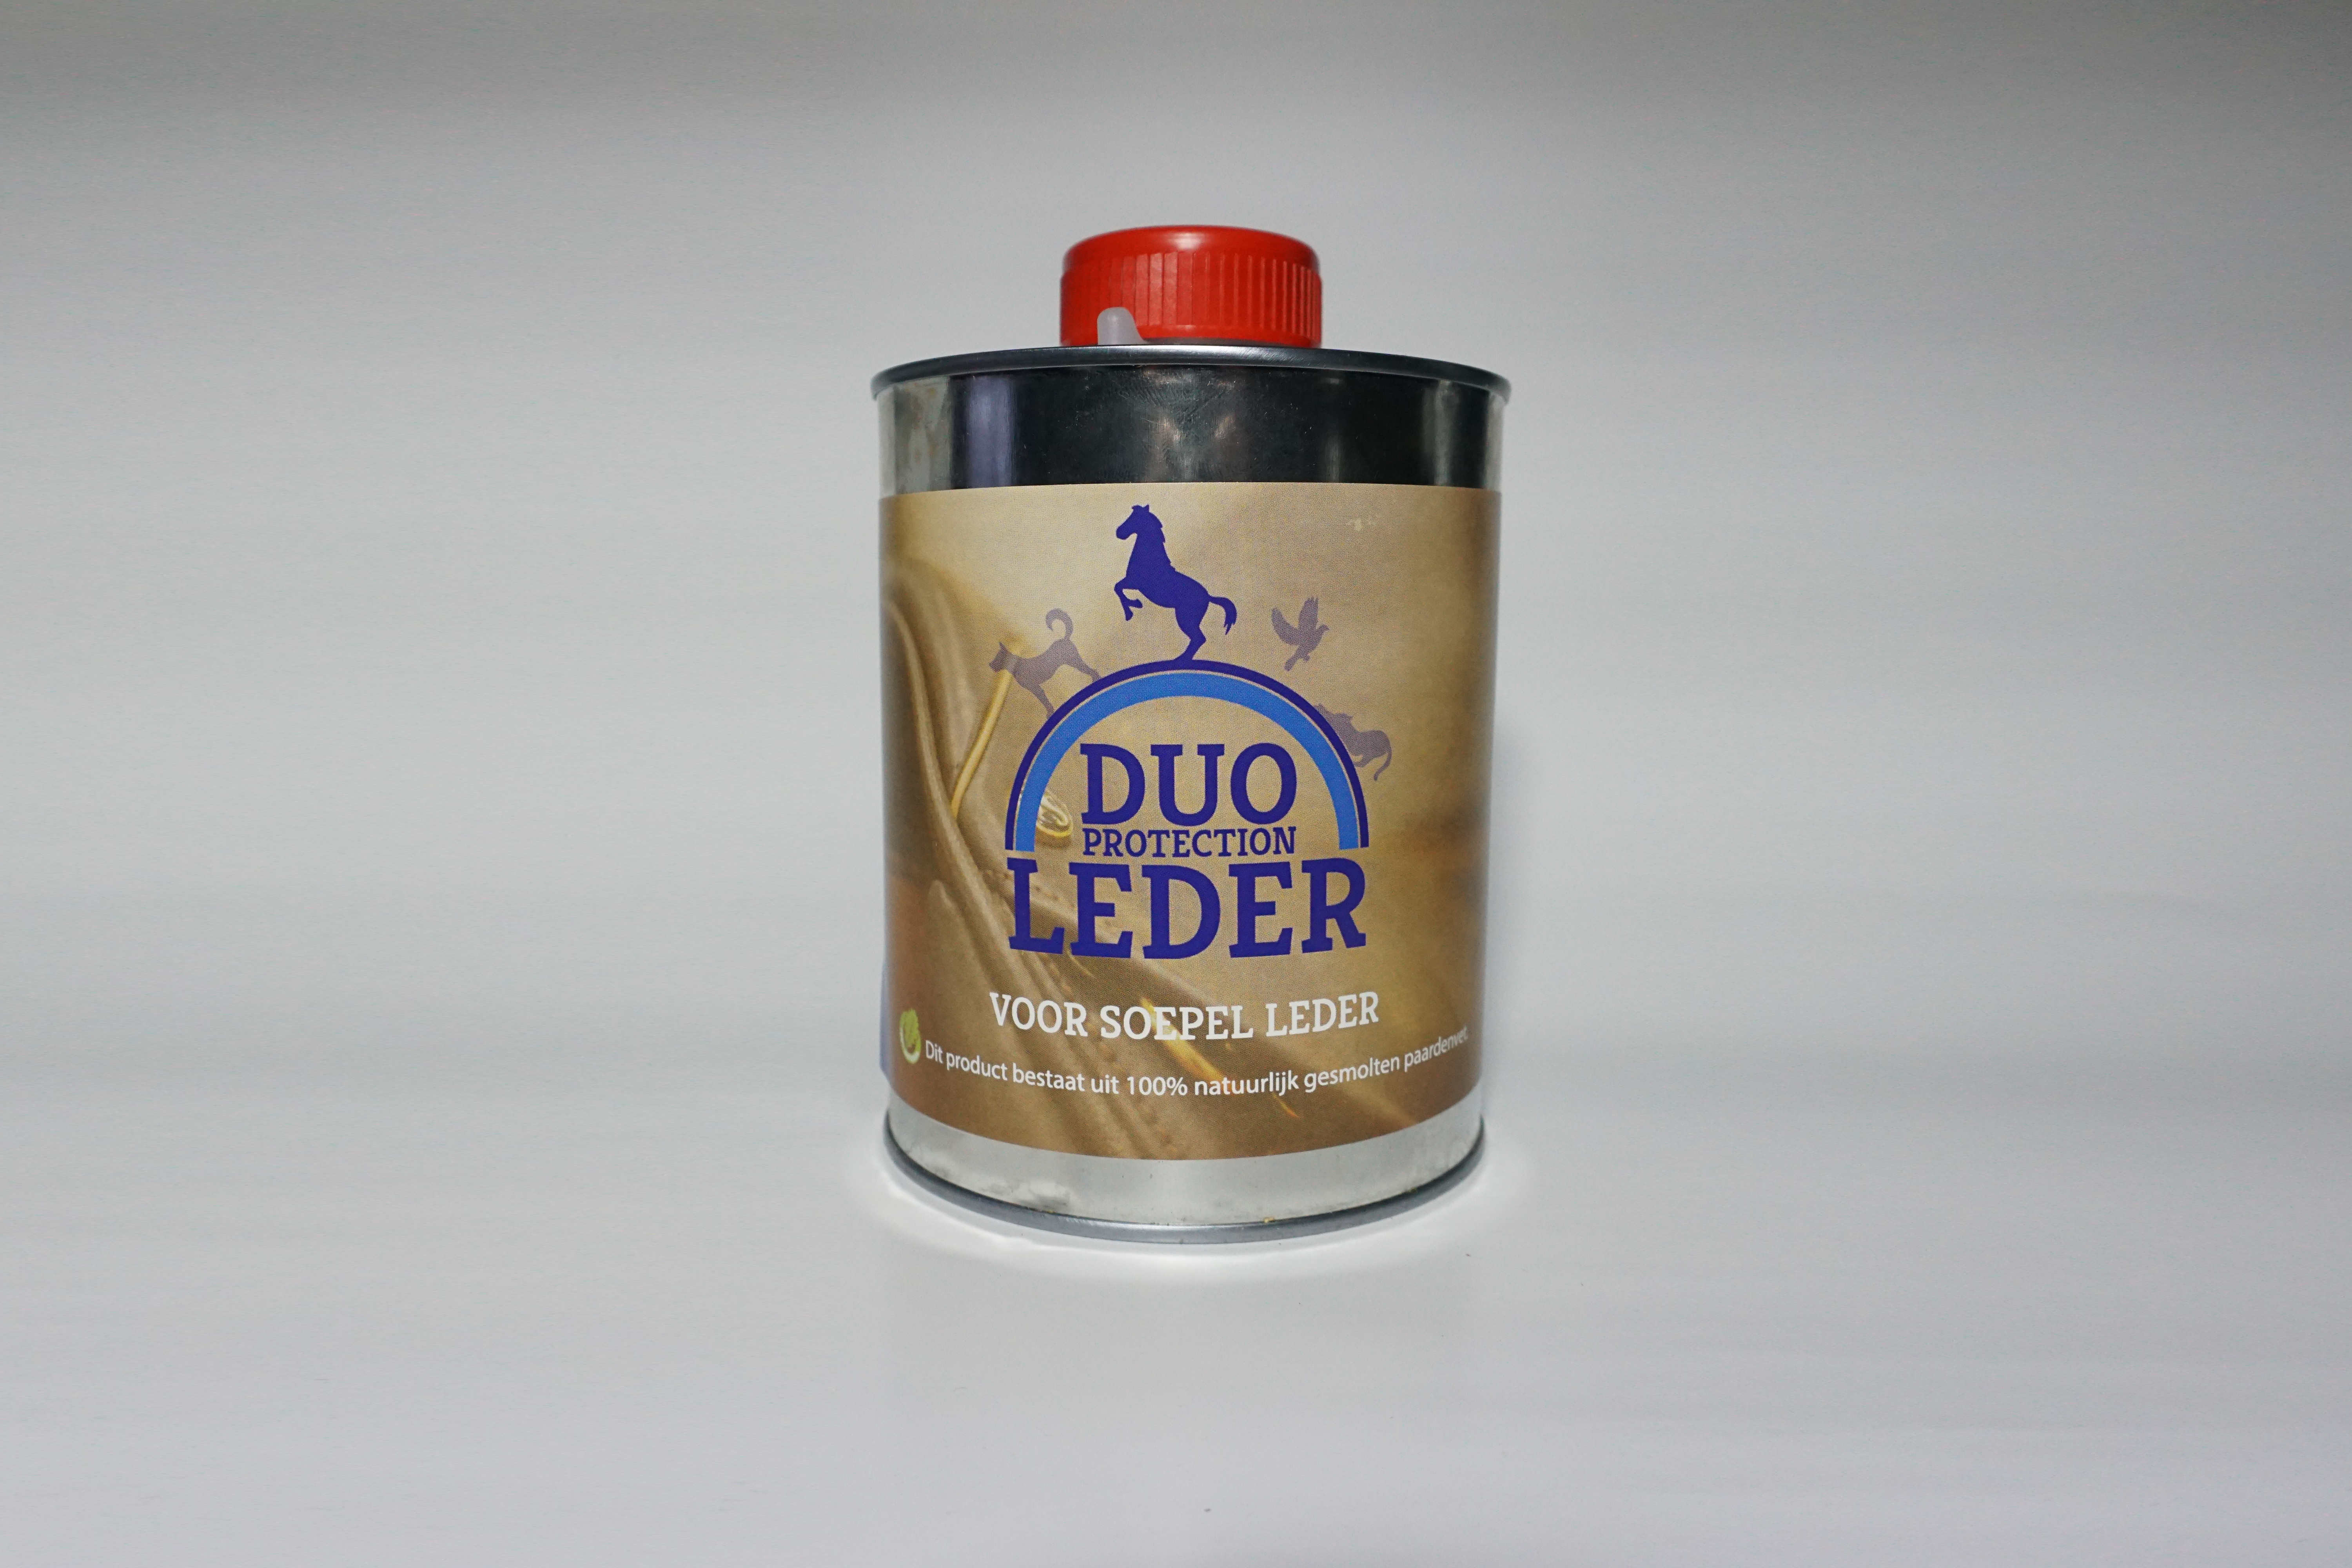 Duo Leather